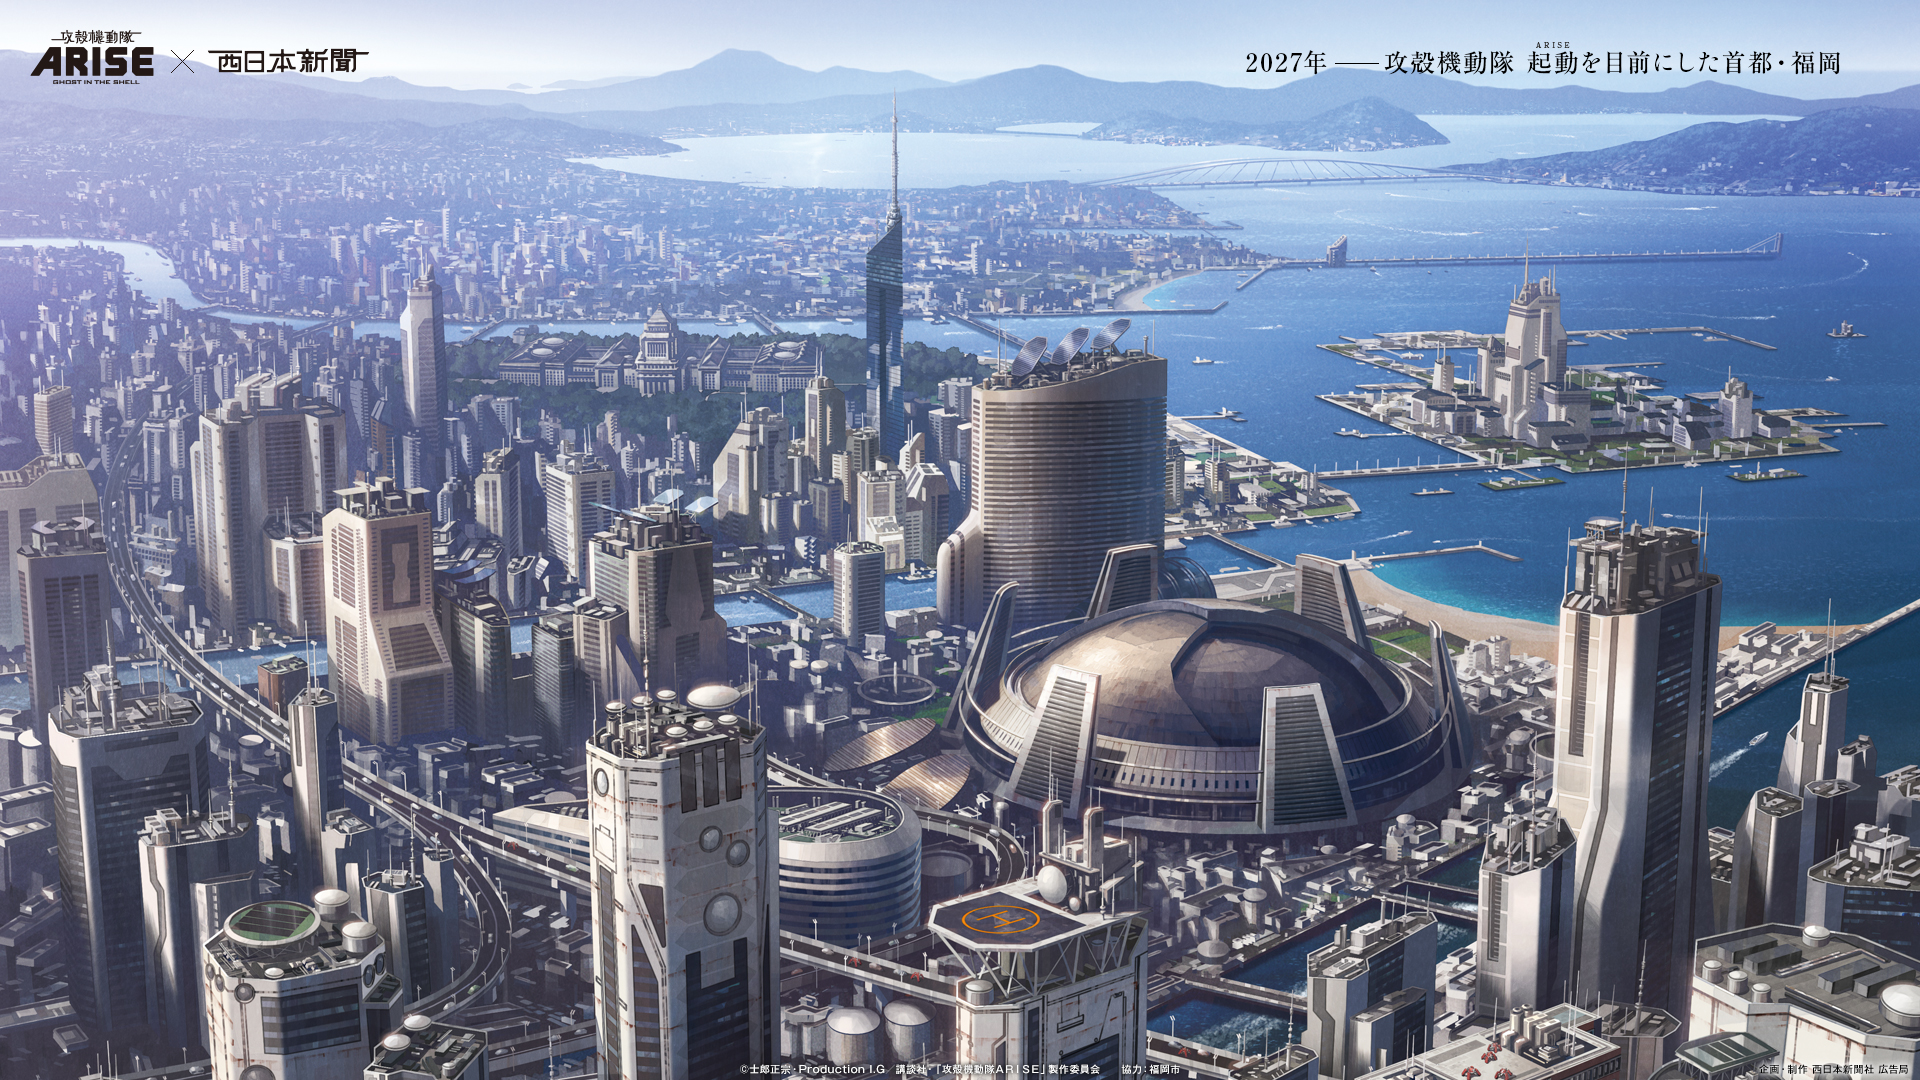 Fukuoka Japan  City new picture : Fukuoka – Japan's Capital City In 2027 | Fukuoka Now